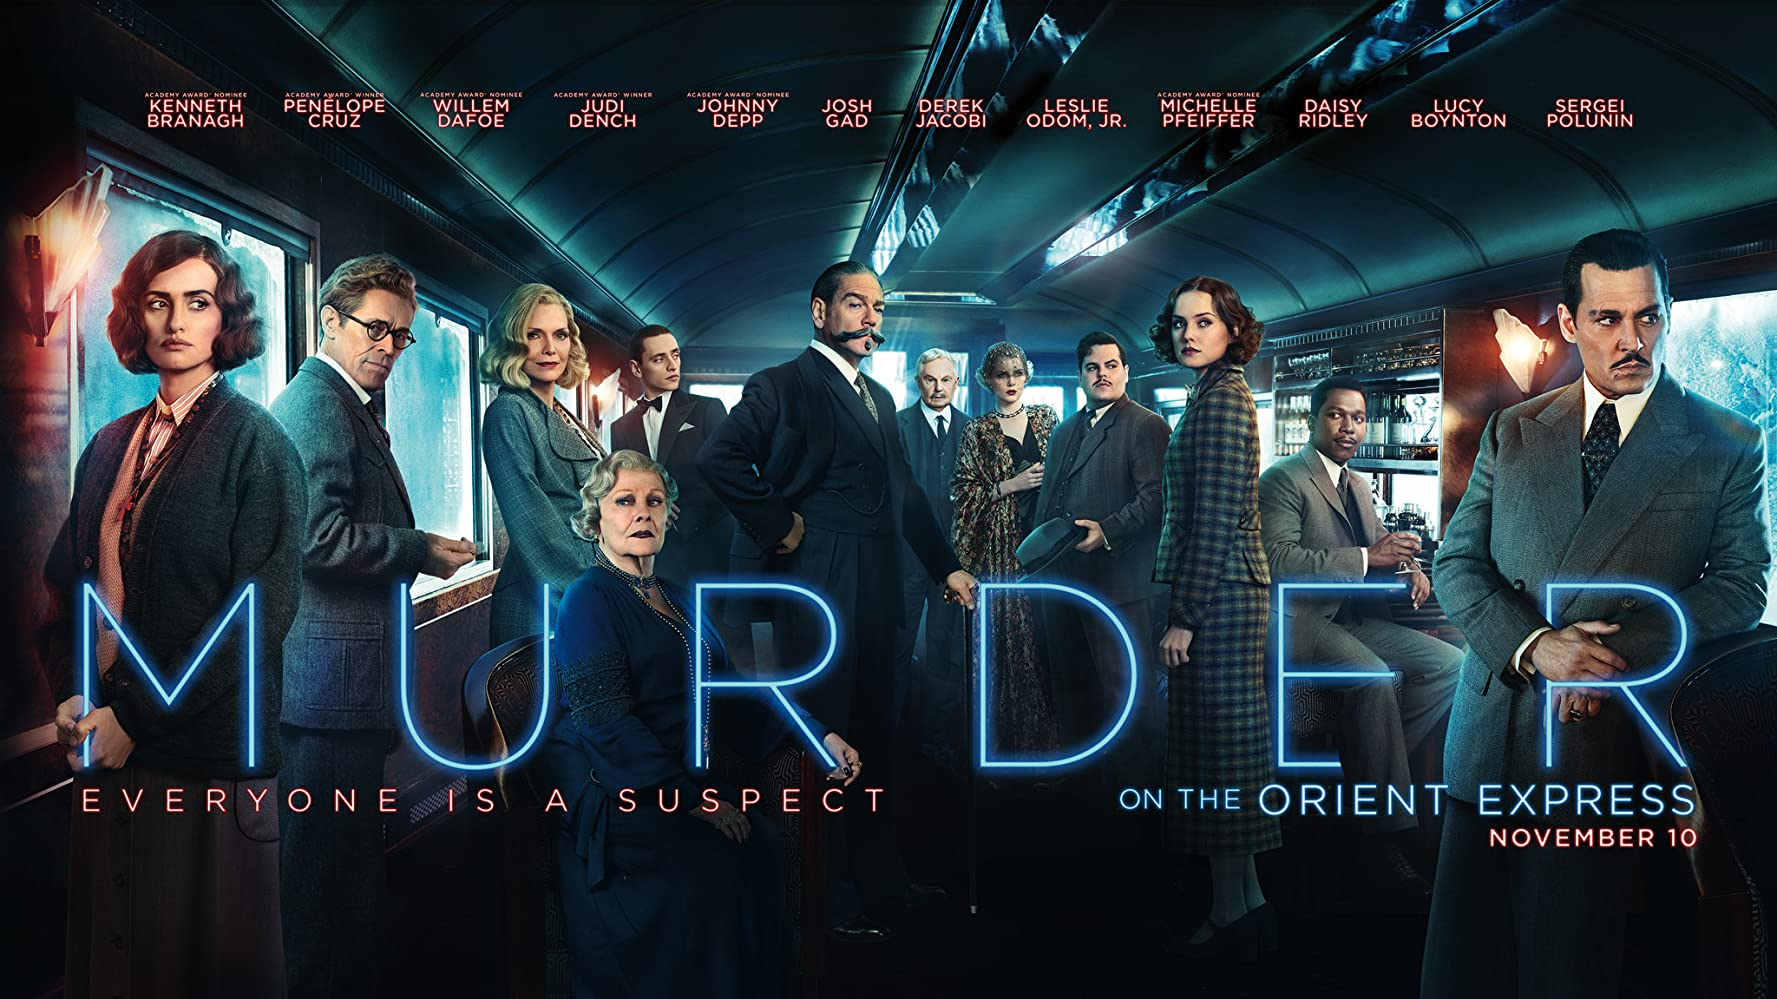 Movie Group Murder On the Orient Express